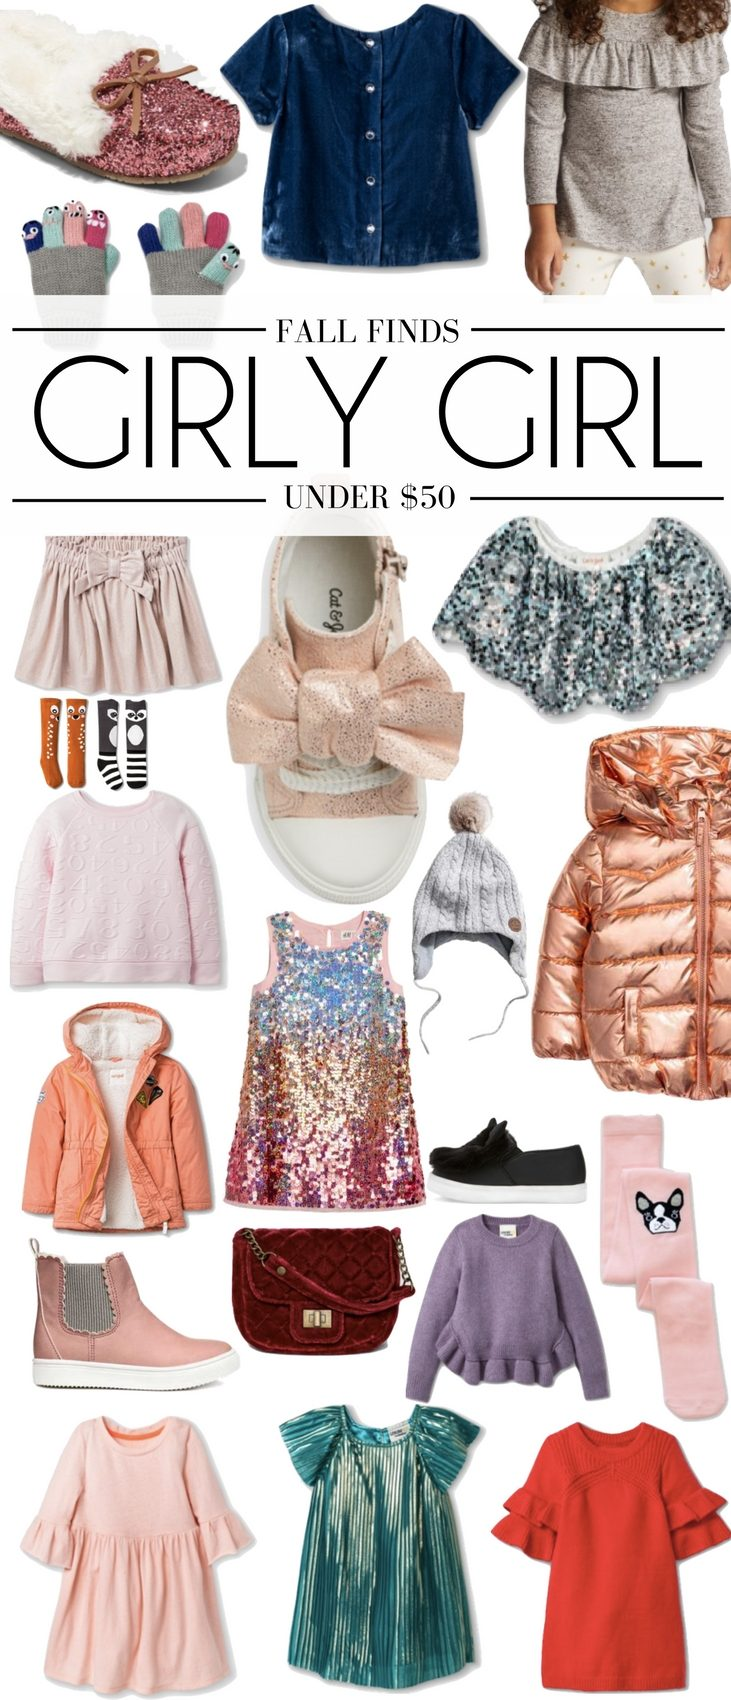 these are the cutest fall clothes for little girls! everything is under $50 and adorable. love the sparkly capelet, rose gold jacket, girly ruffled stuff and fun shoes for girls